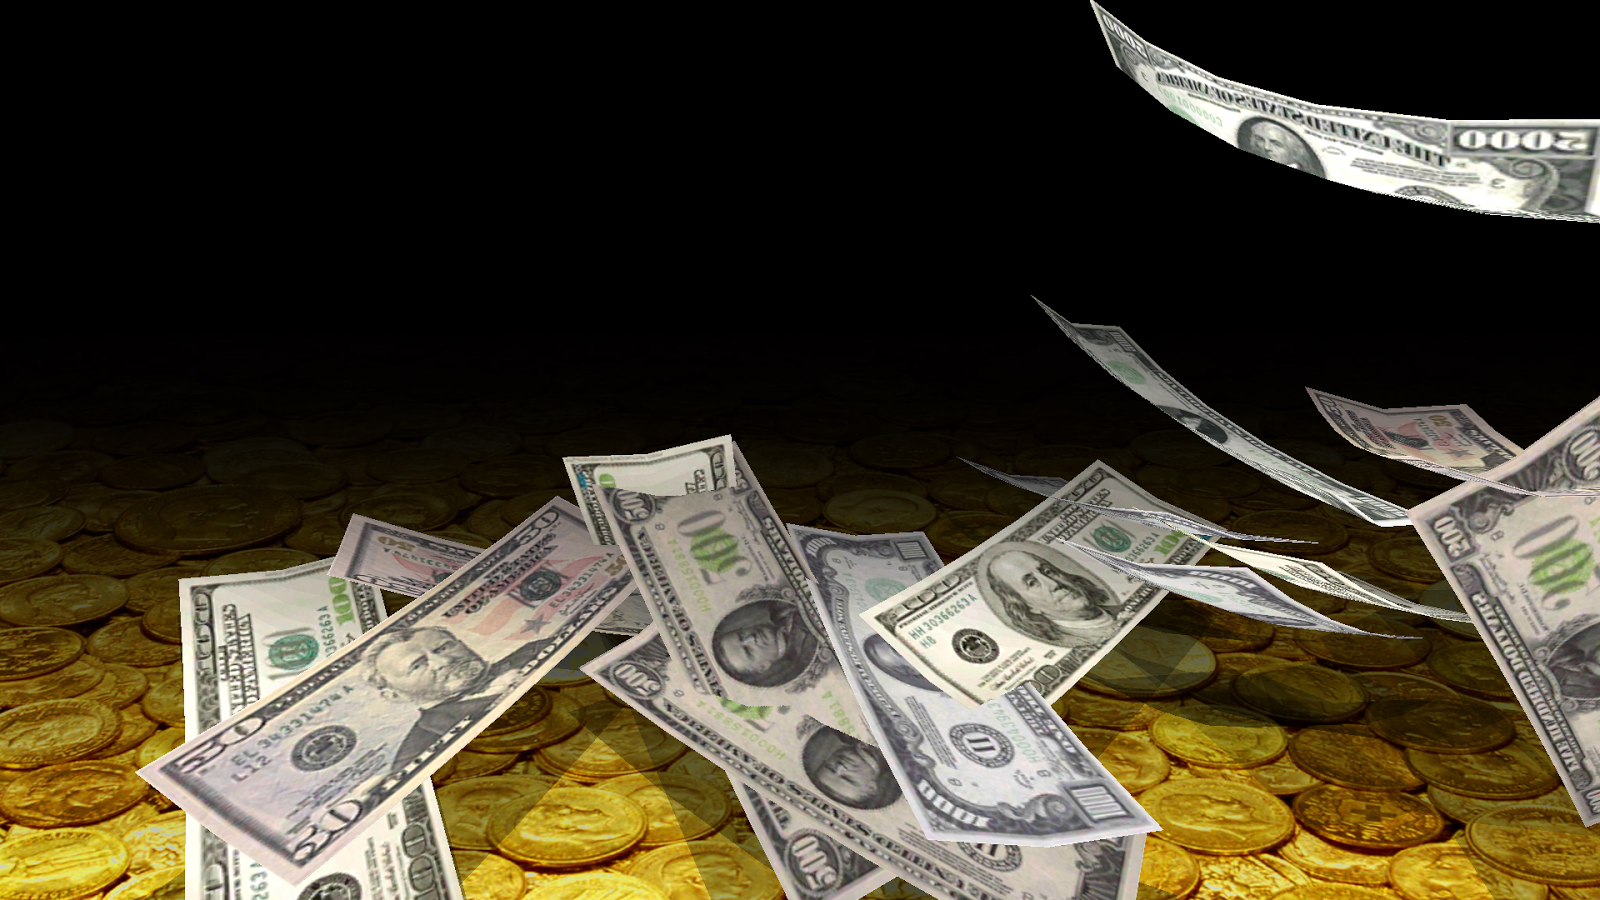 Falling Money 3d Live Wallpaper Android Apps On Google Play HD Wallpapers Download Free Images Wallpaper [1000image.com]